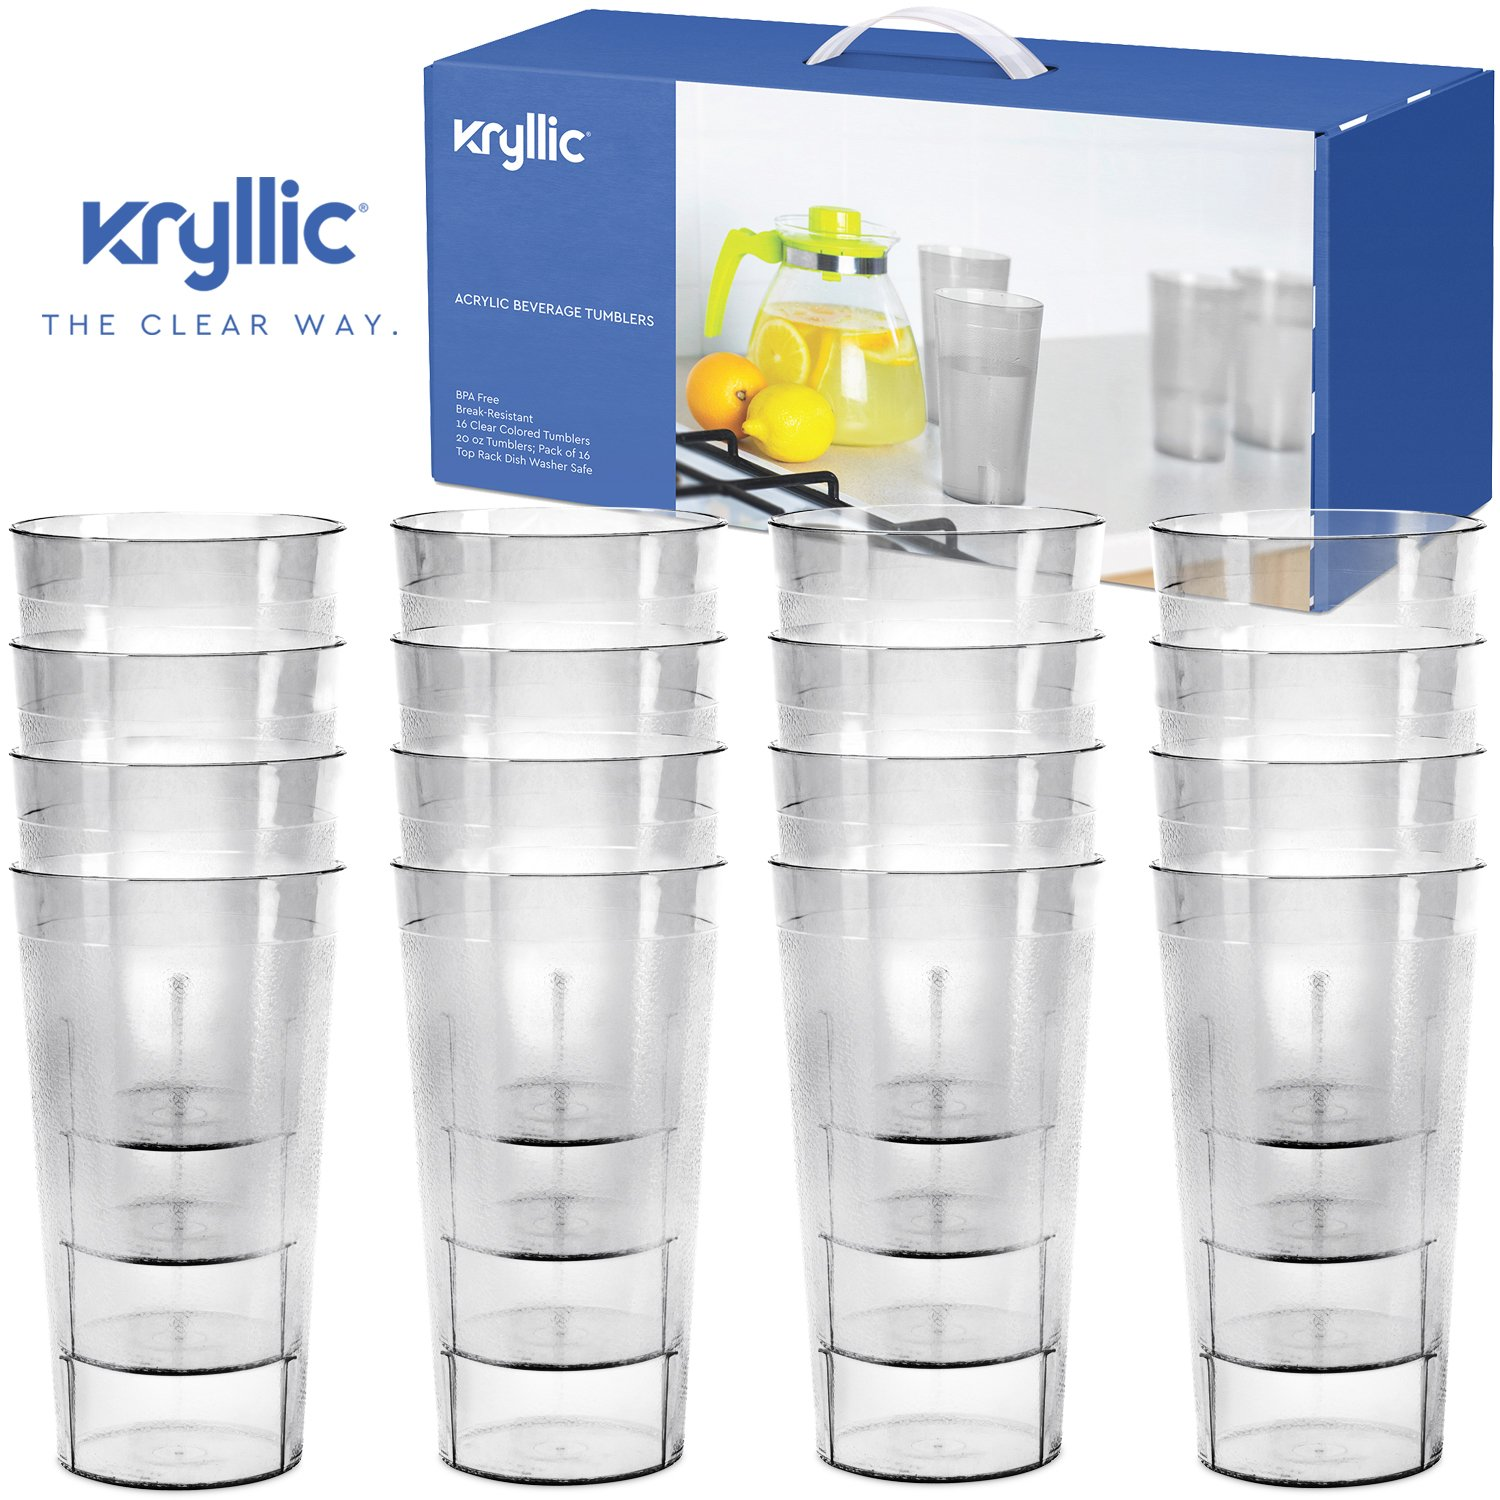 Plastic Tumblers Drinkware Glasses Cups - Acrylic Tumbler Set of 16 Break Resistant 20 oz. in 4 Assorted Colors Restaurant Quality Tumblers Dishwasher Safe and BPA Free by Kryllic 30362